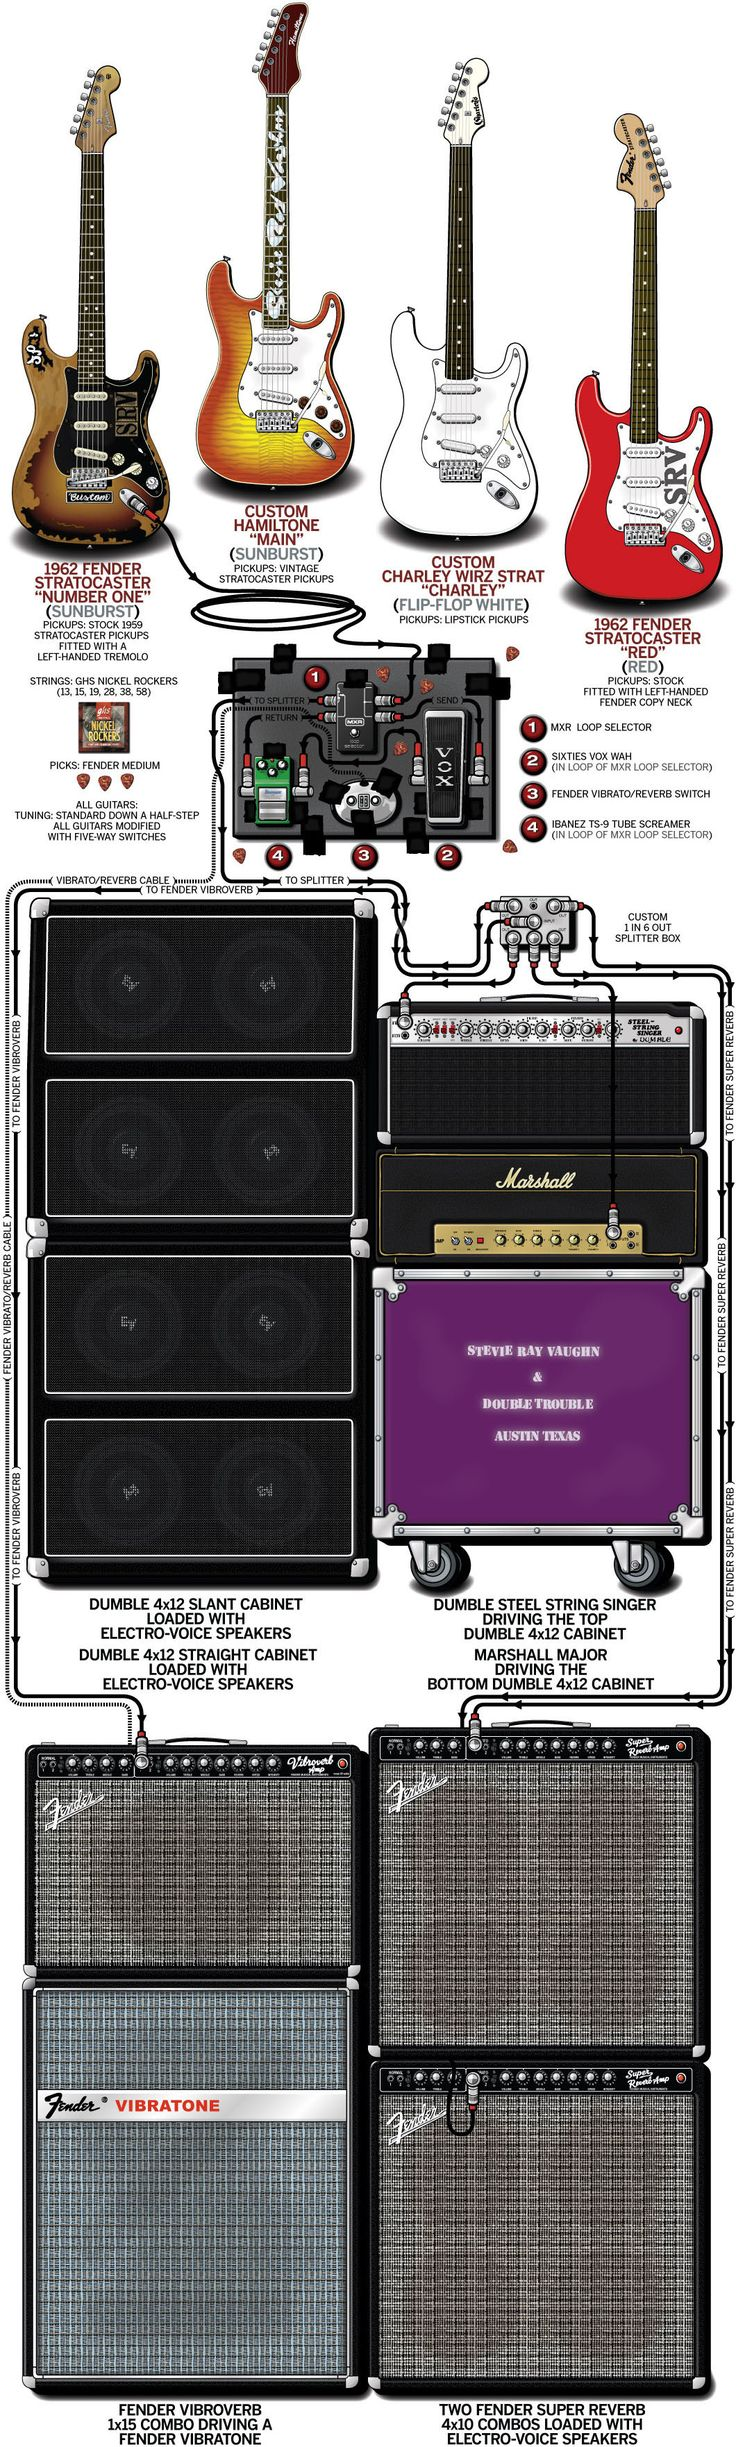 SRV's Rig...the rig I've been trying to replicate on a small scale for years- Shared by The Lewis Hamilton Band -   https://www.facebook.com/lewishamiltonband  http://www.lewishamiltonmusic.co.uk/home  http://www.reverbnation.com/lewishamiltonmusic